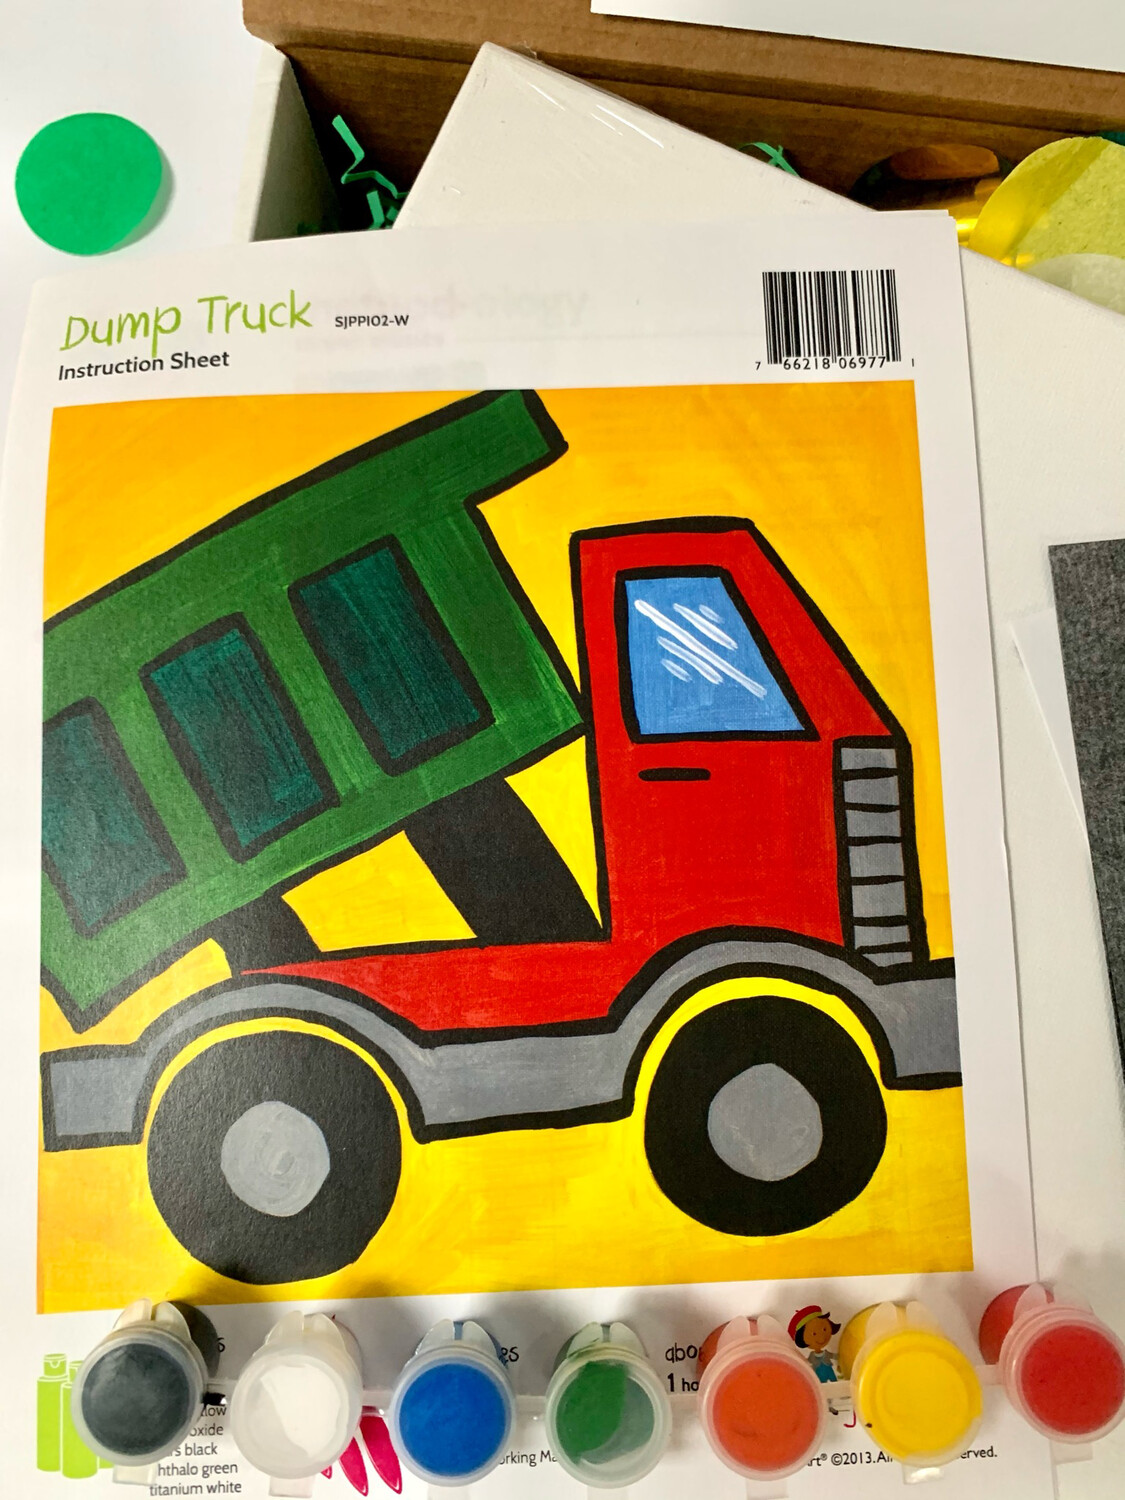 Dump Truck KIDS Acrylic Paint On Canvas DIY Art Kit